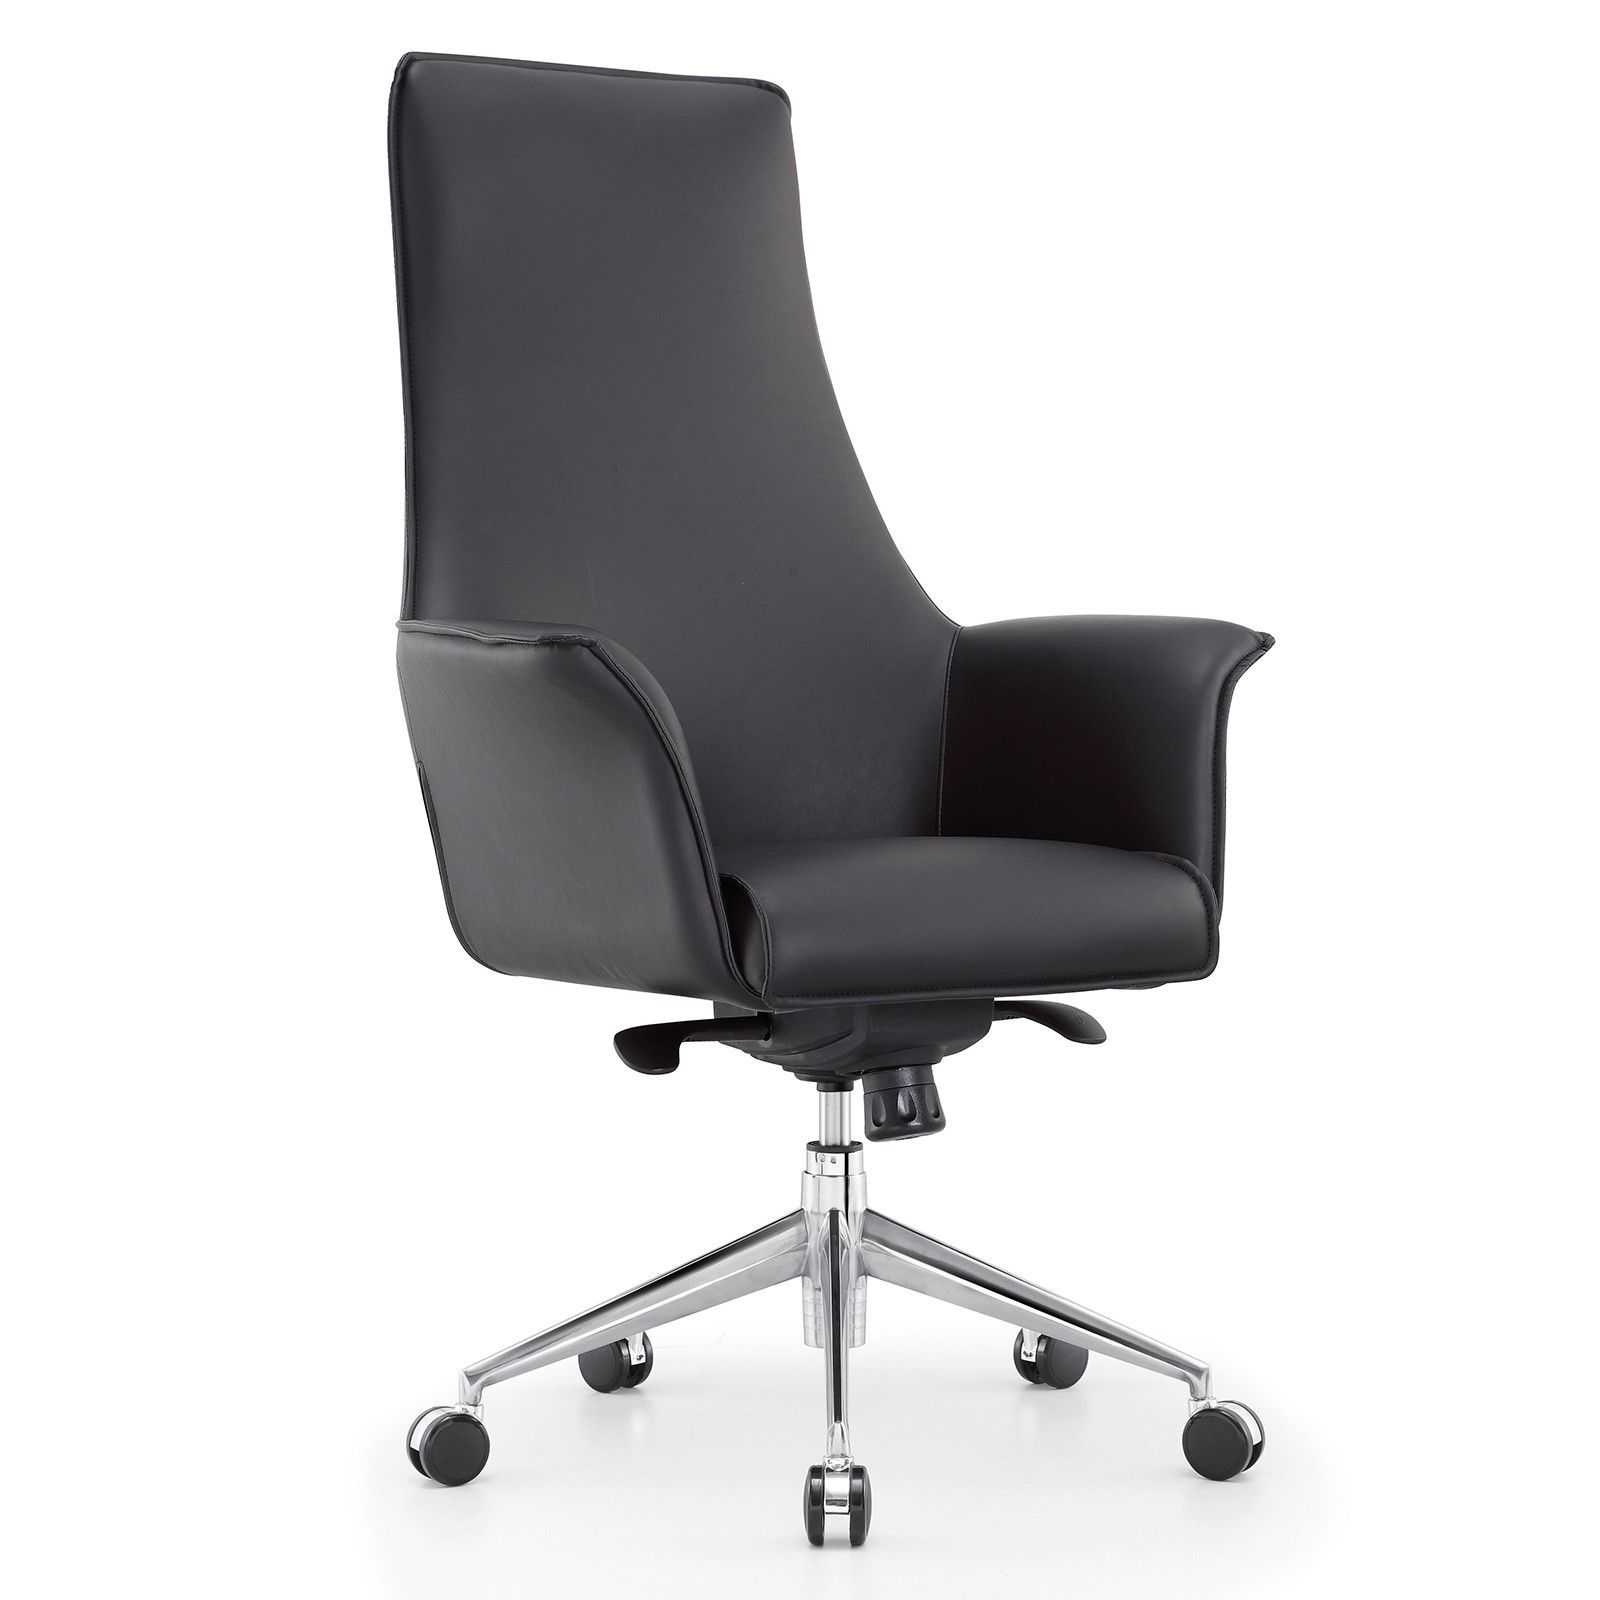 M32 High Back Executive Managerial Office Chair In Vegan